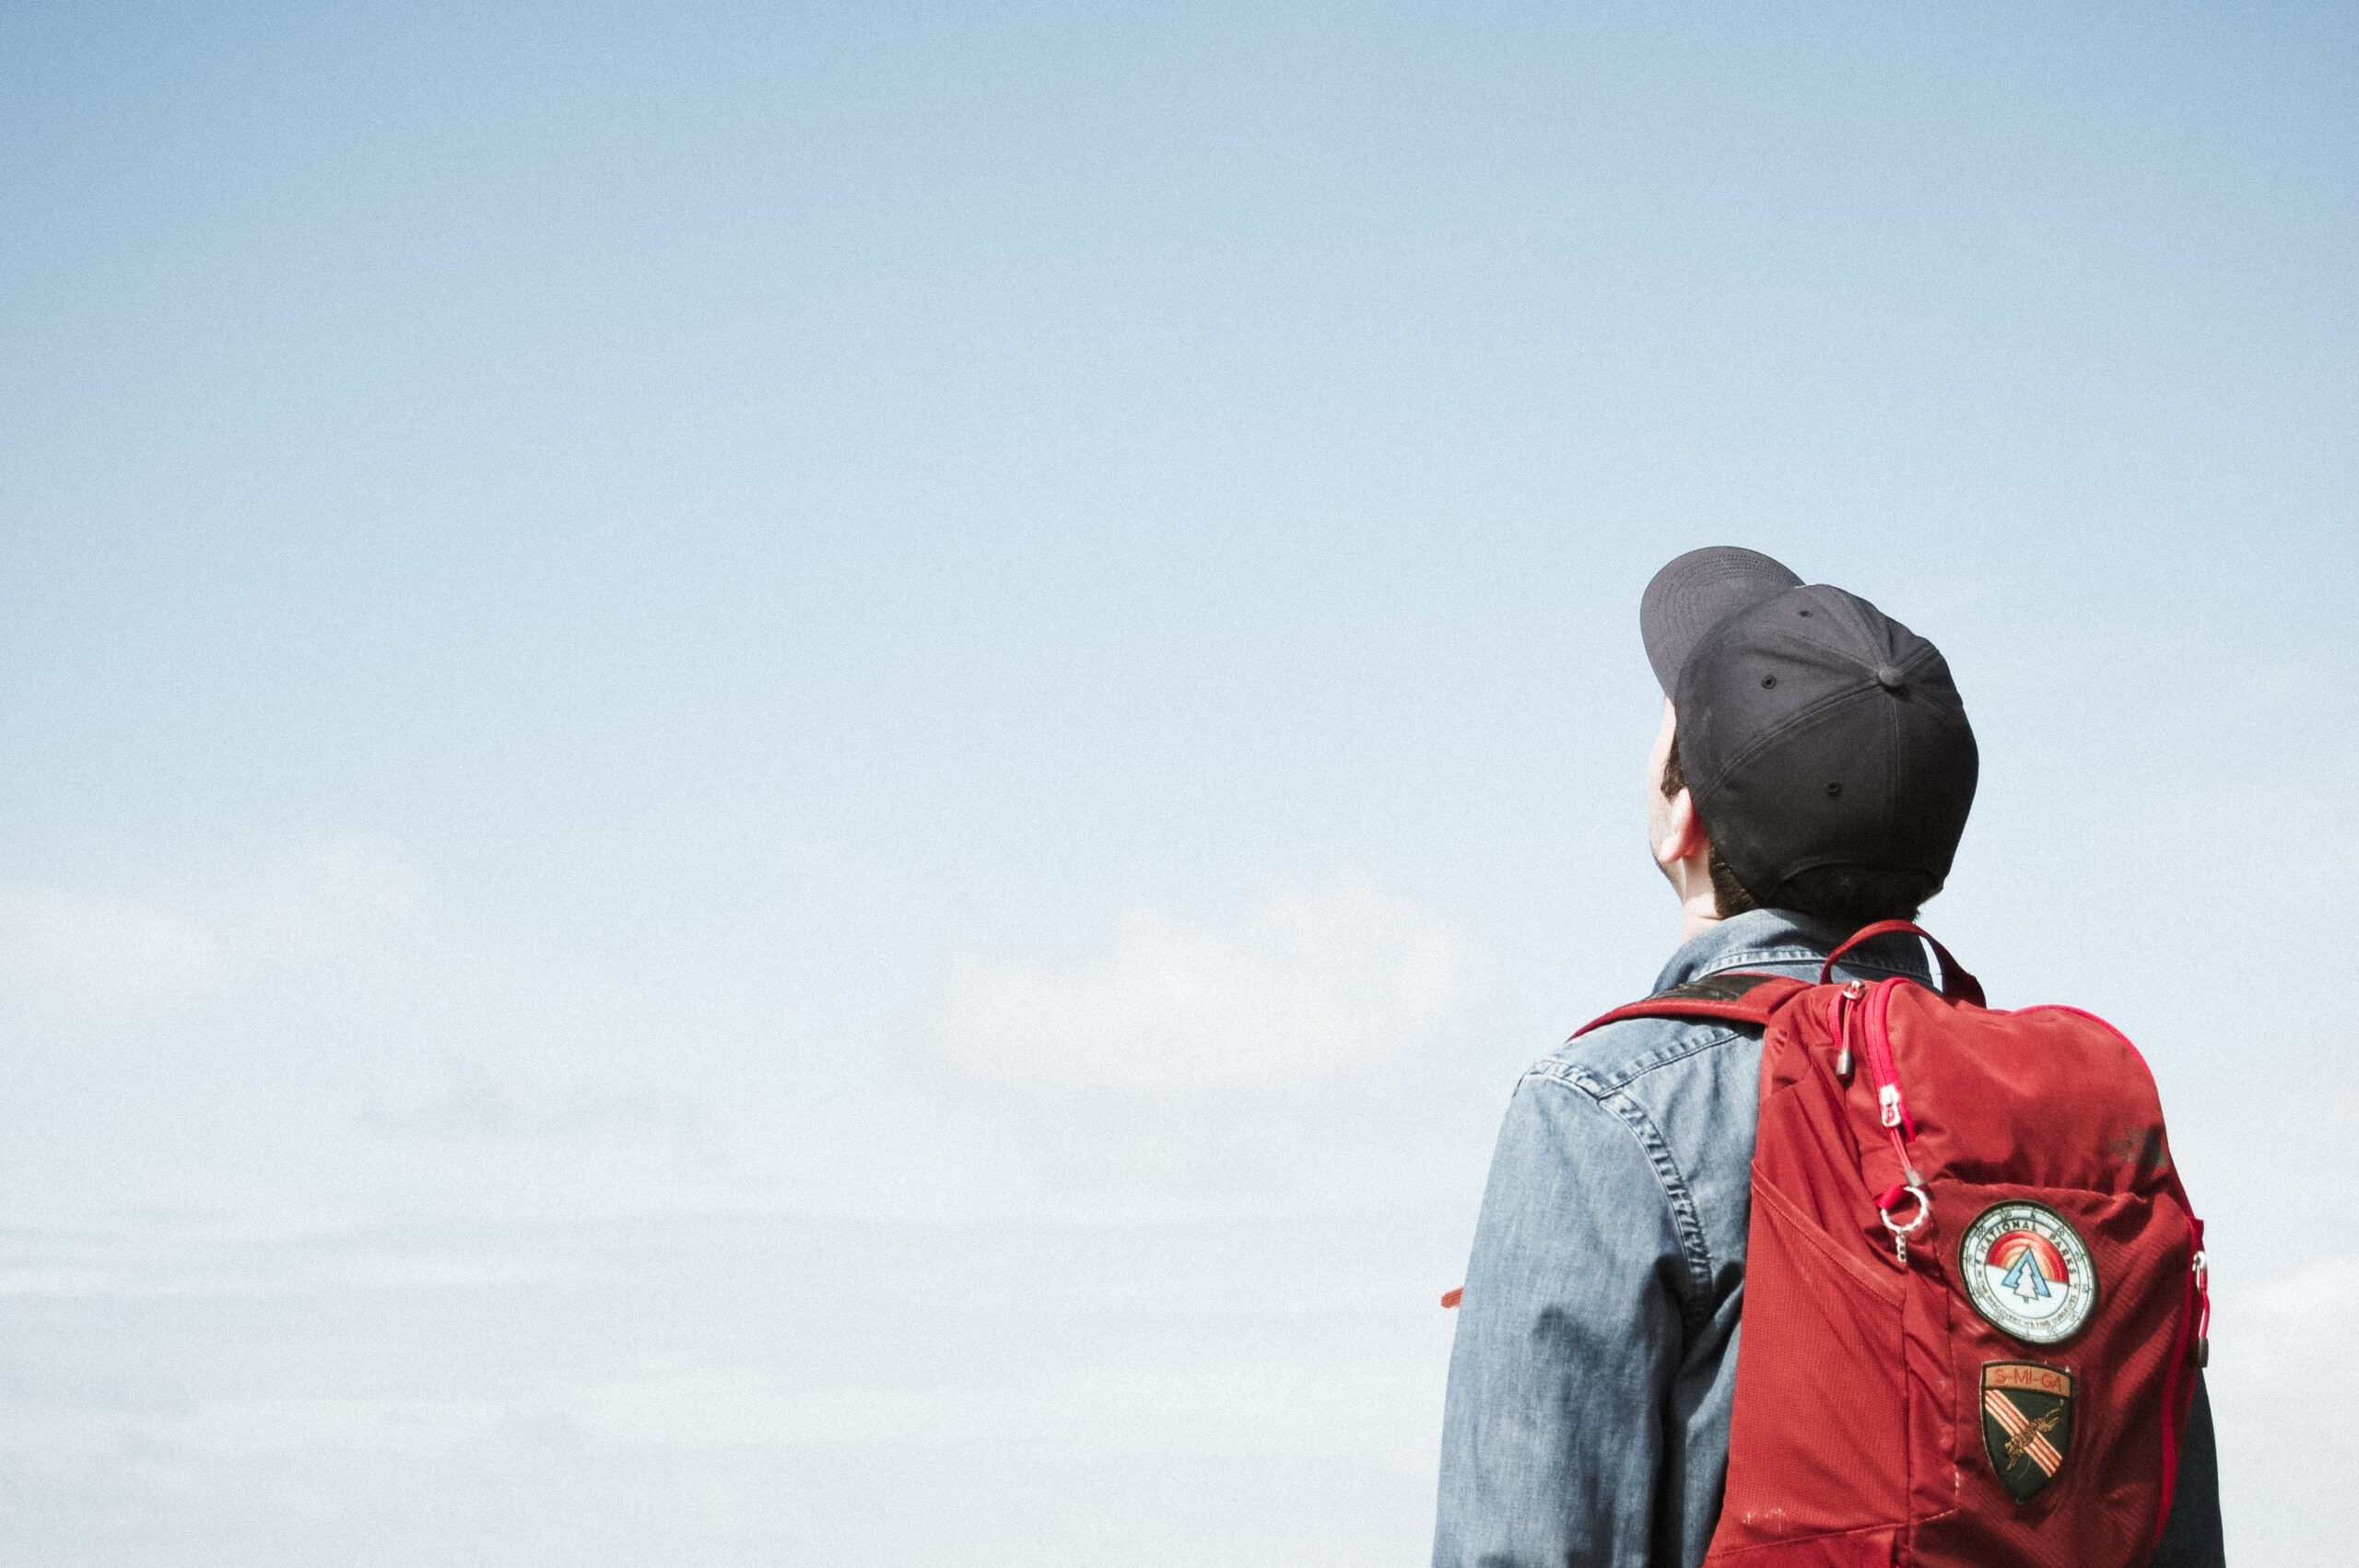 Boy with a backpack looking up at the sky